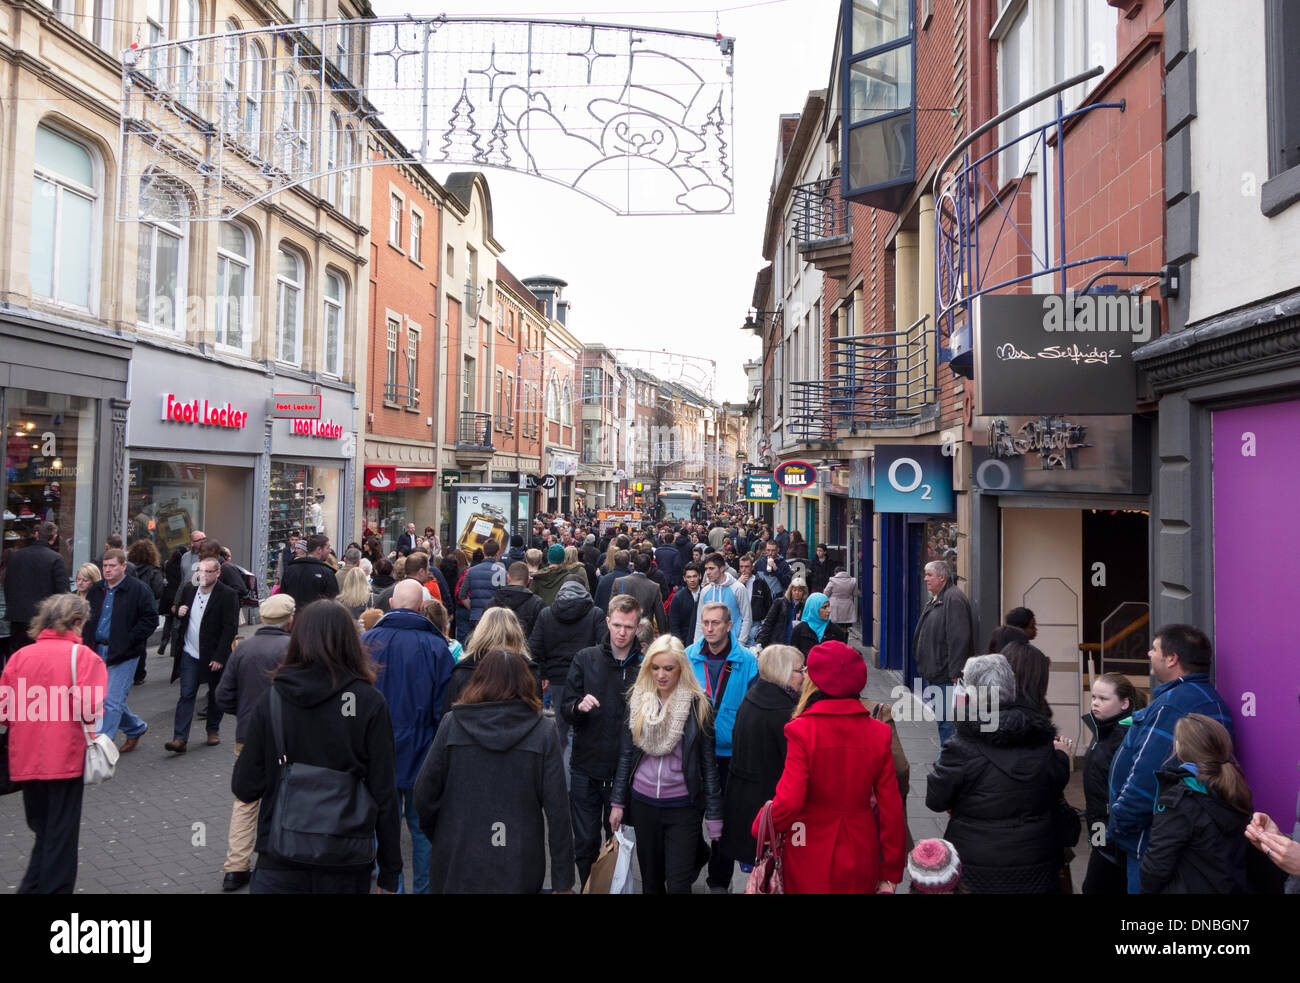 Clumber Street, Nottingham, UK. 21st December 2013. Christmas shoppers in Nottingham city centre on the last Saturday before Christmas. Clumber Street in Nottingham is reputed to be the busiest pedestrianised shopping area in Europe. Credit:  Mark Richardson/Alamy Live News - Stock Image